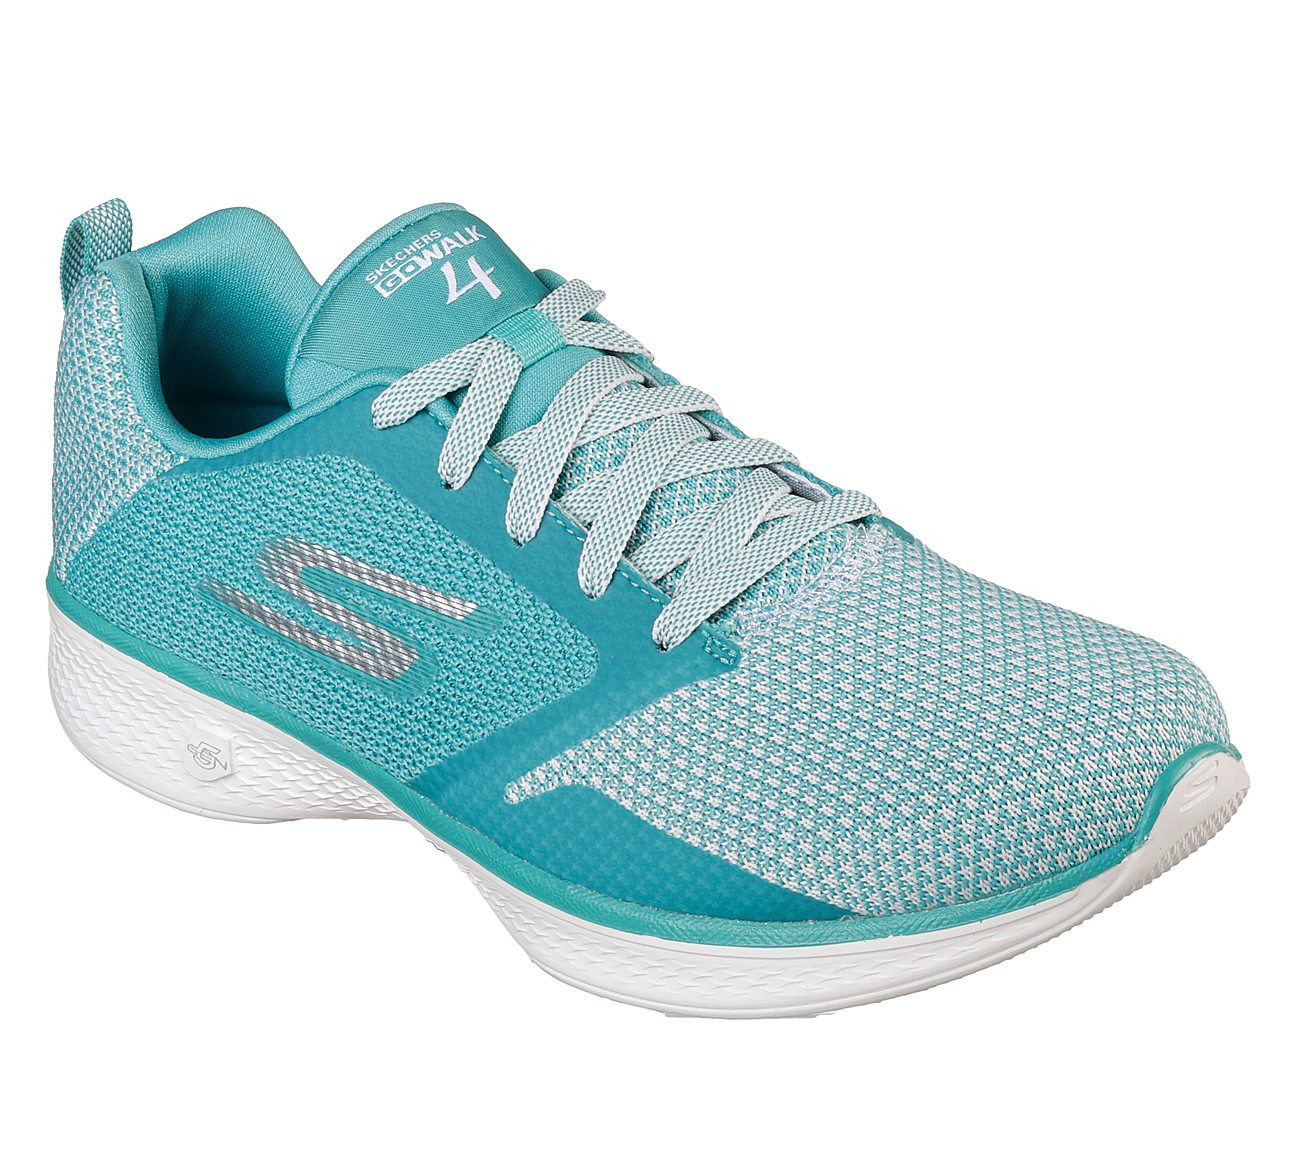 Skechers GOwalk 4 Edge